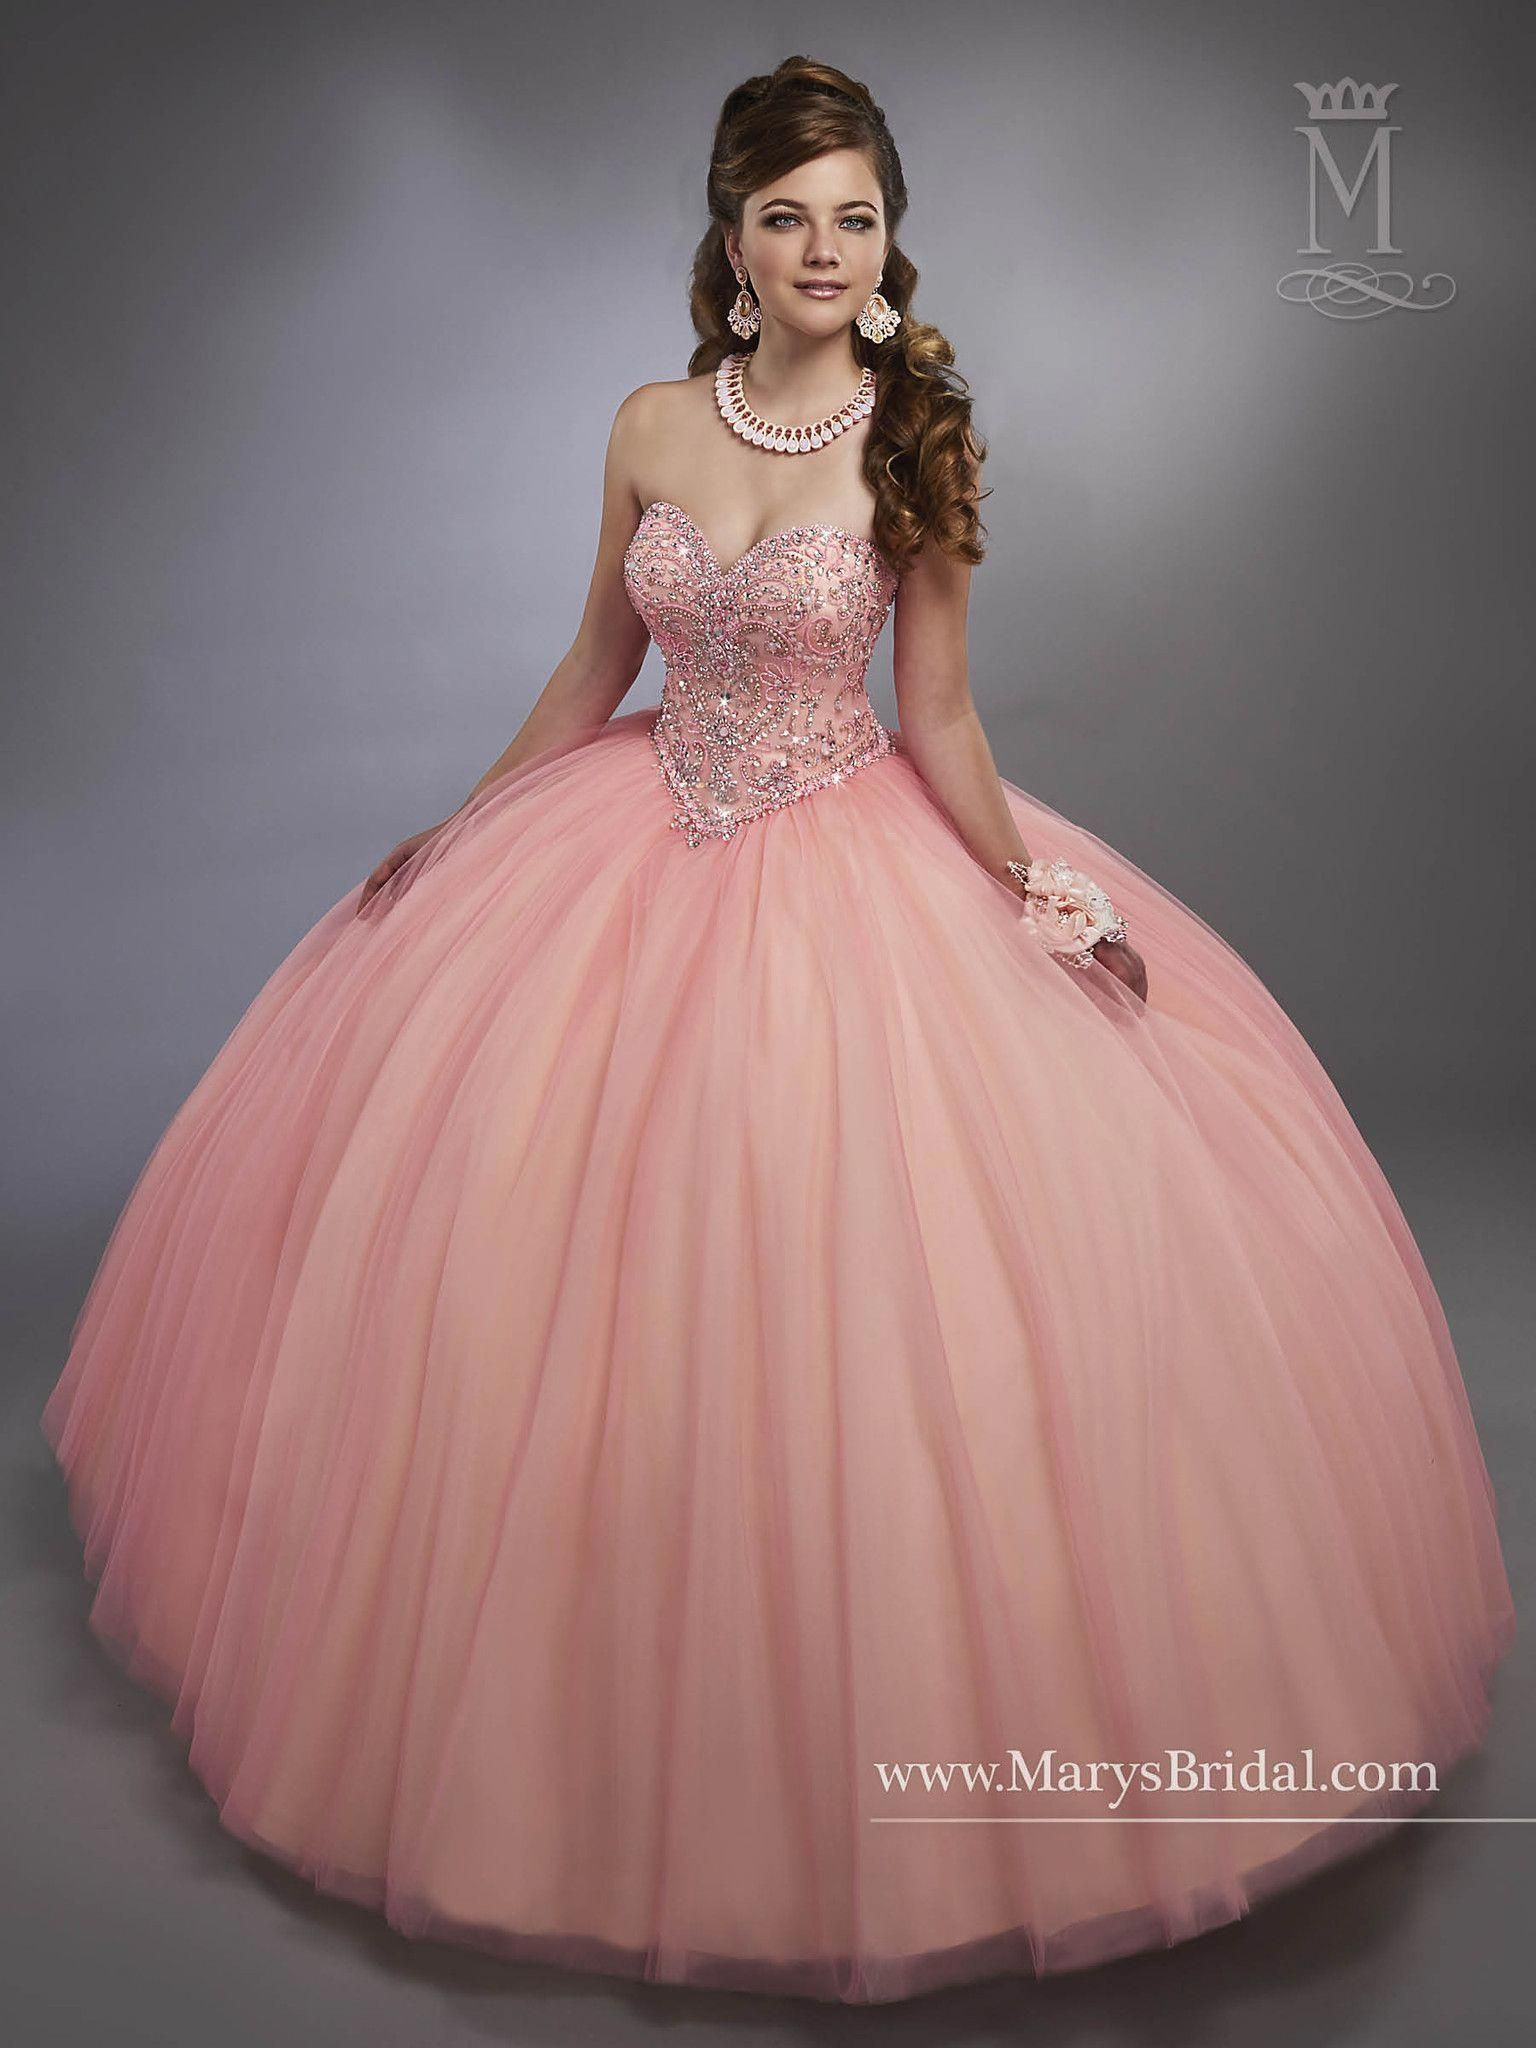 b56c1e9153f Mary s Bridal Beloving Collection Quinceanera Dress Style 4778   uniquequinceaneradresses